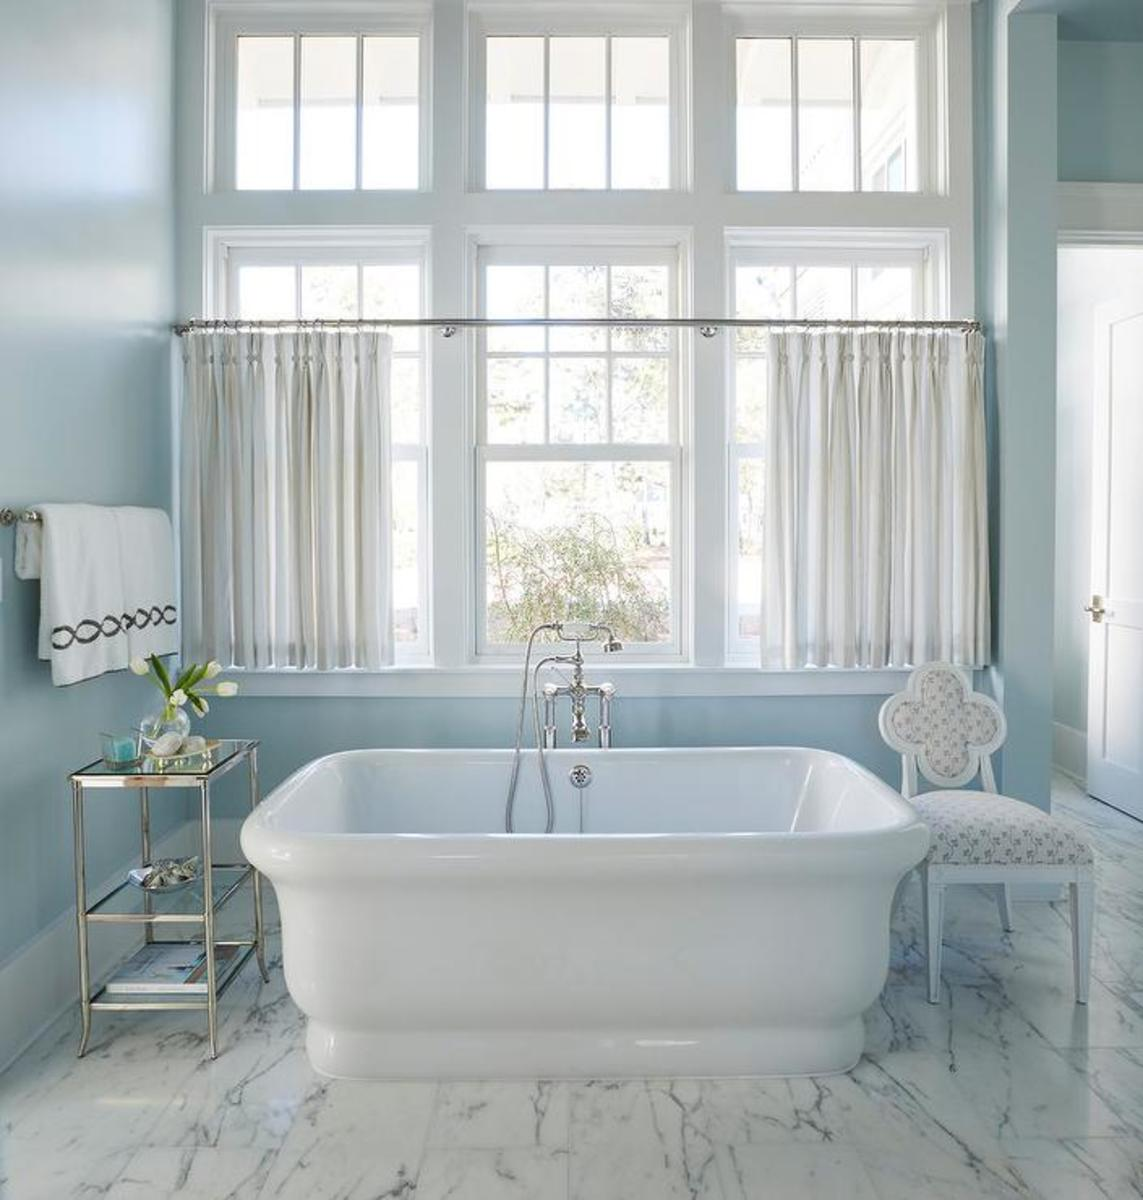 The Cancer bathroom should be a paradise of blue, gray, and silver.